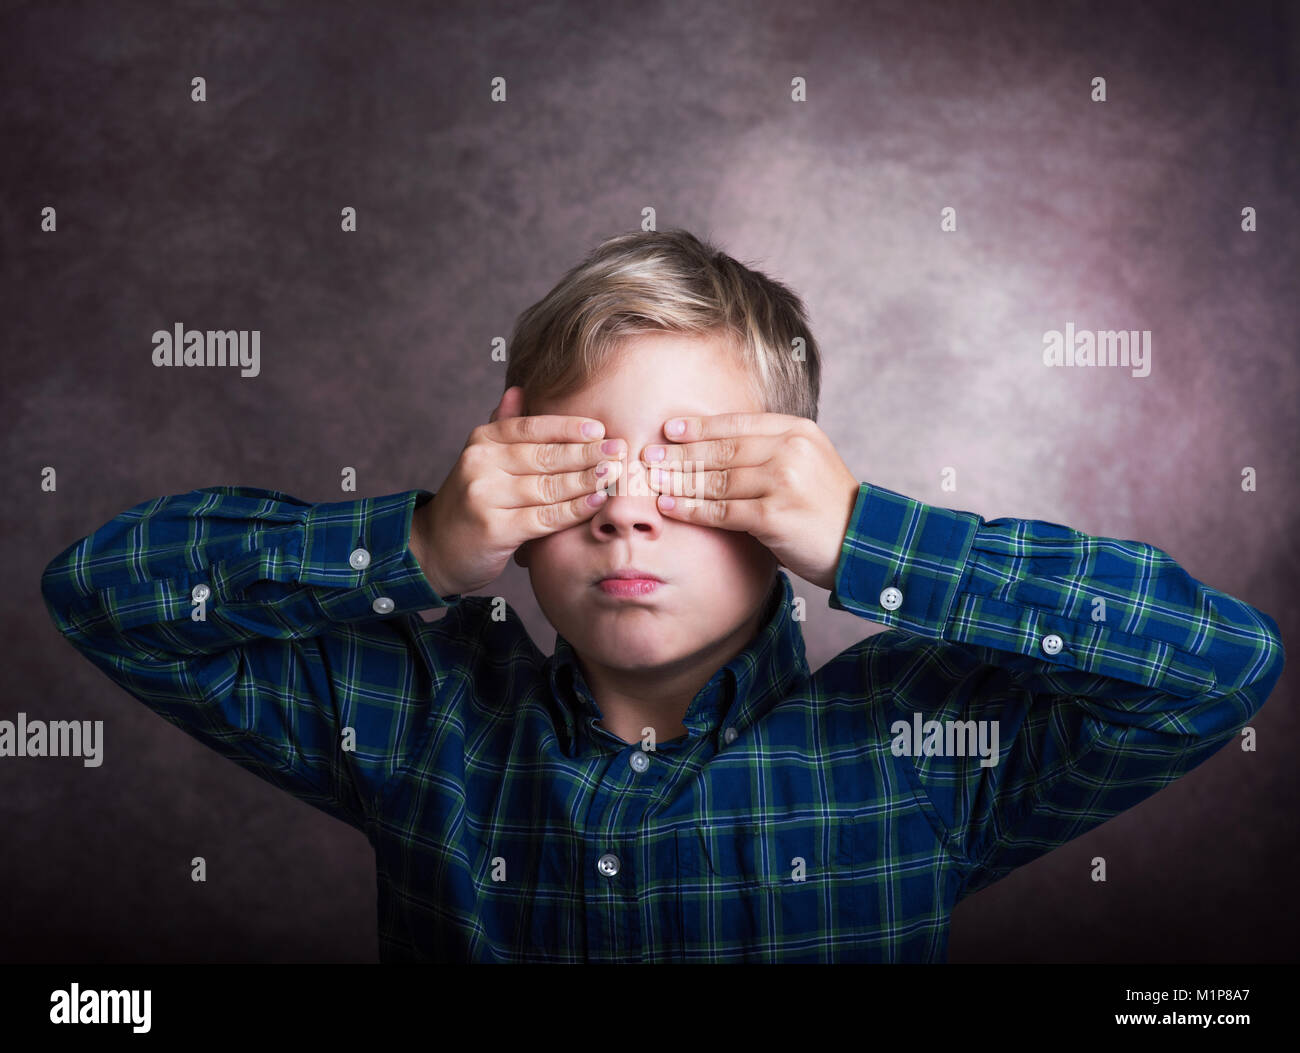 Boy with closed eyes on a dark background - Stock Image